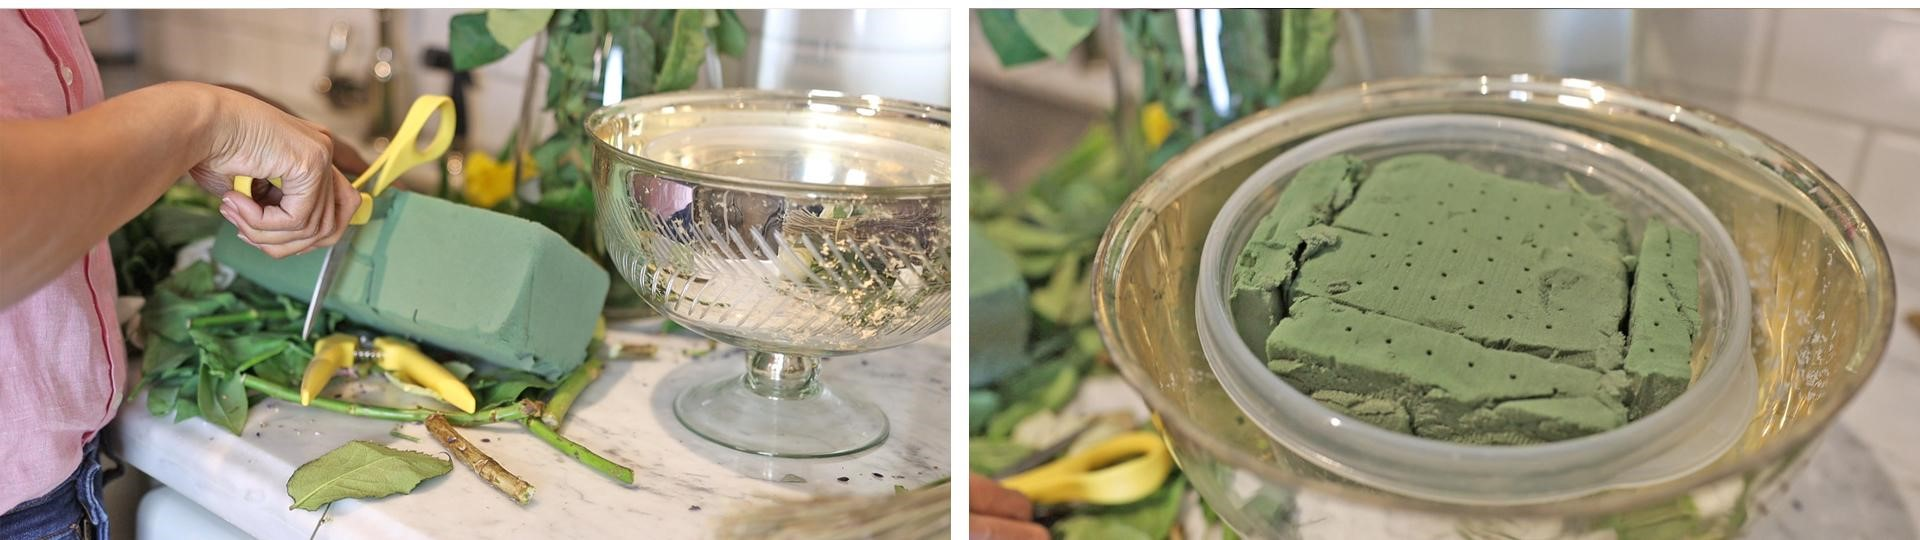 Cut your floral foam to size, soak in water, and place in a food container before placing it in your decorative bowl